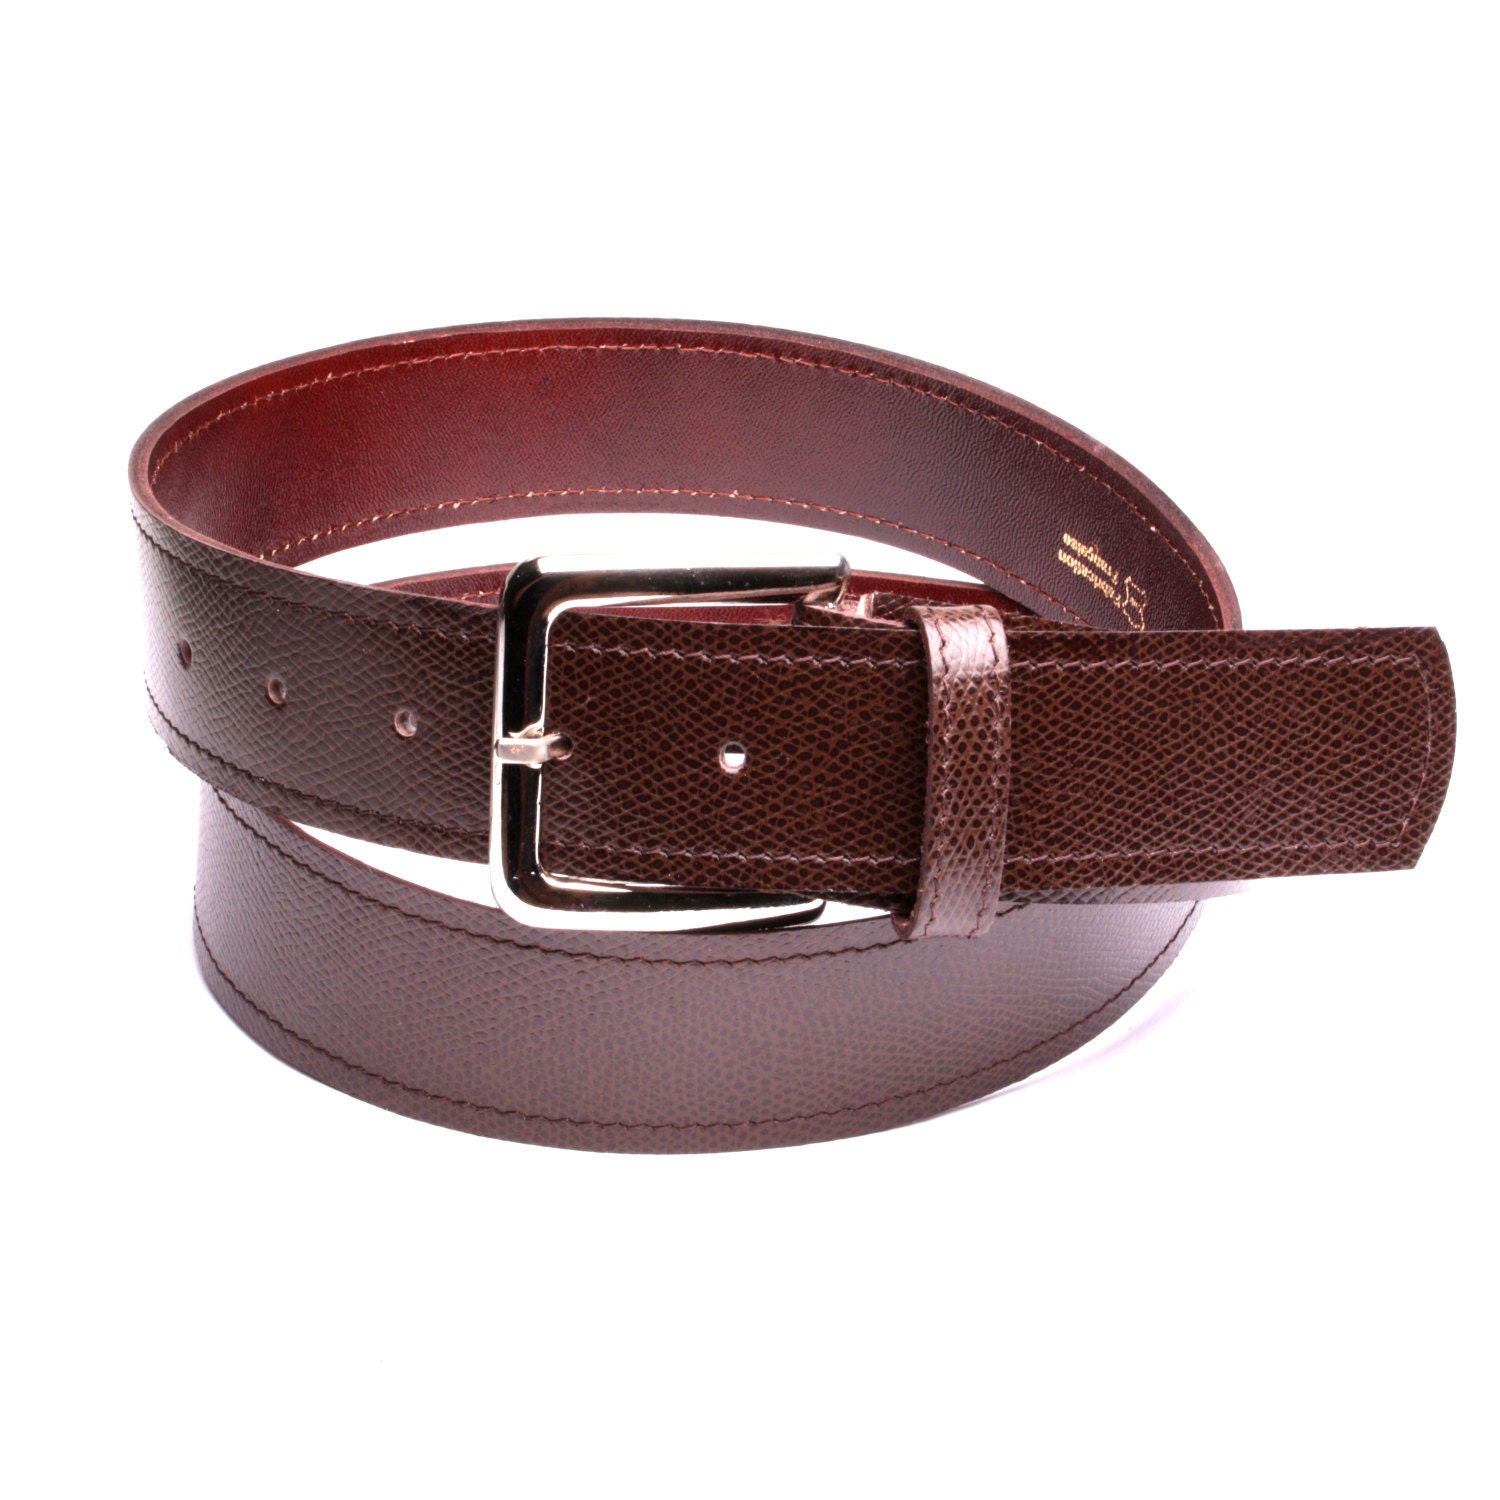 brown leather belt and soft leather lining handmade